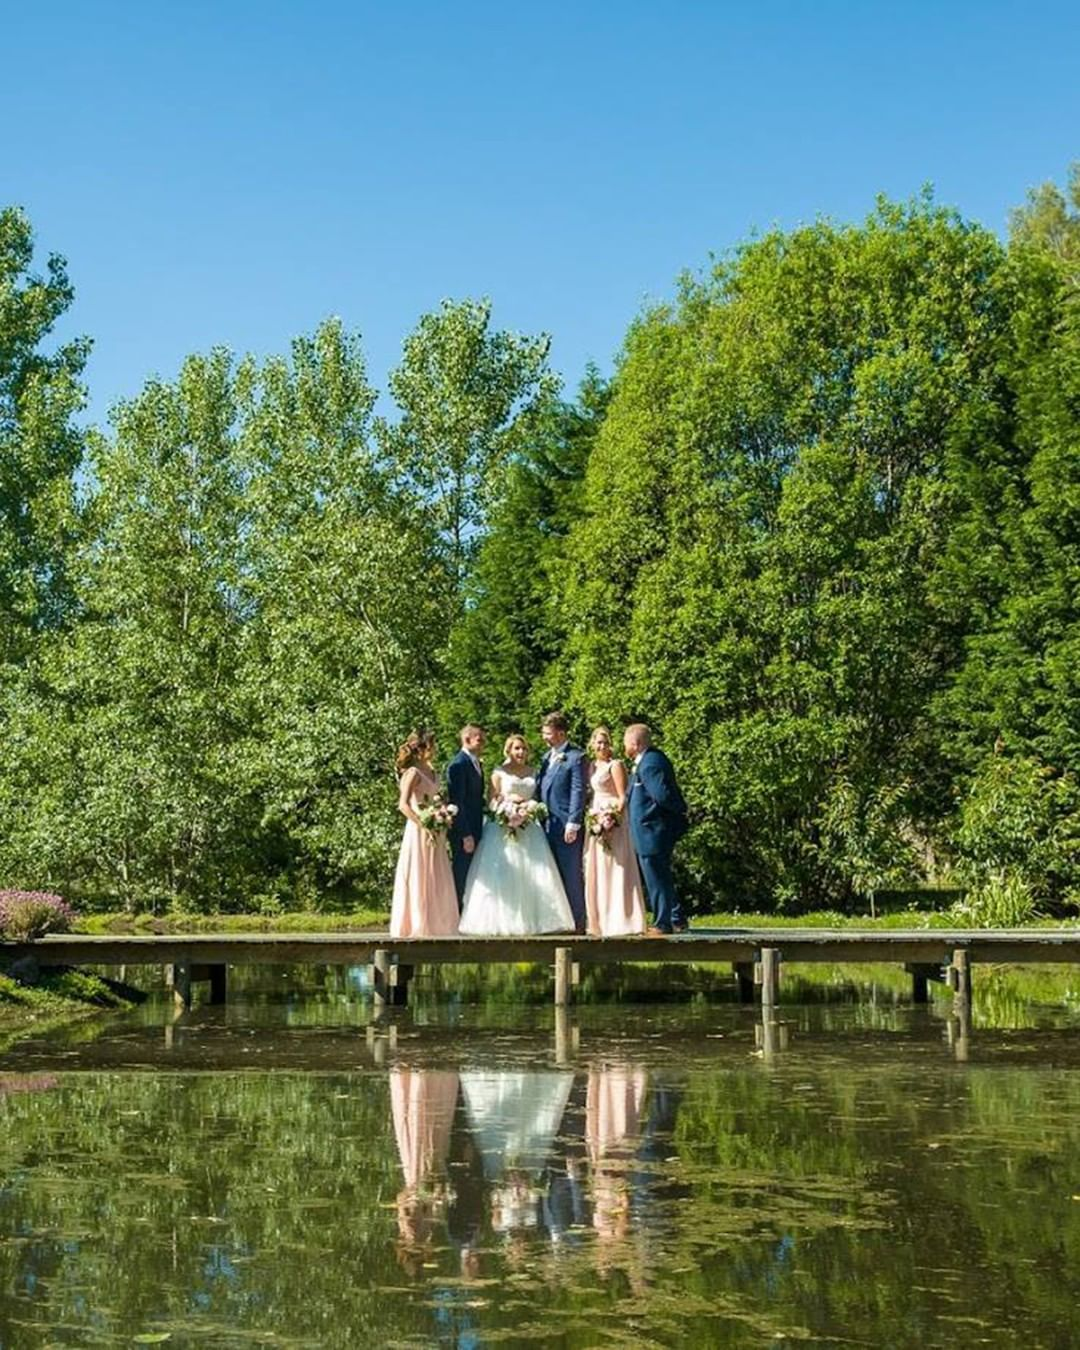 Water, a bridge and a beautiful backdrop of trees make for ...